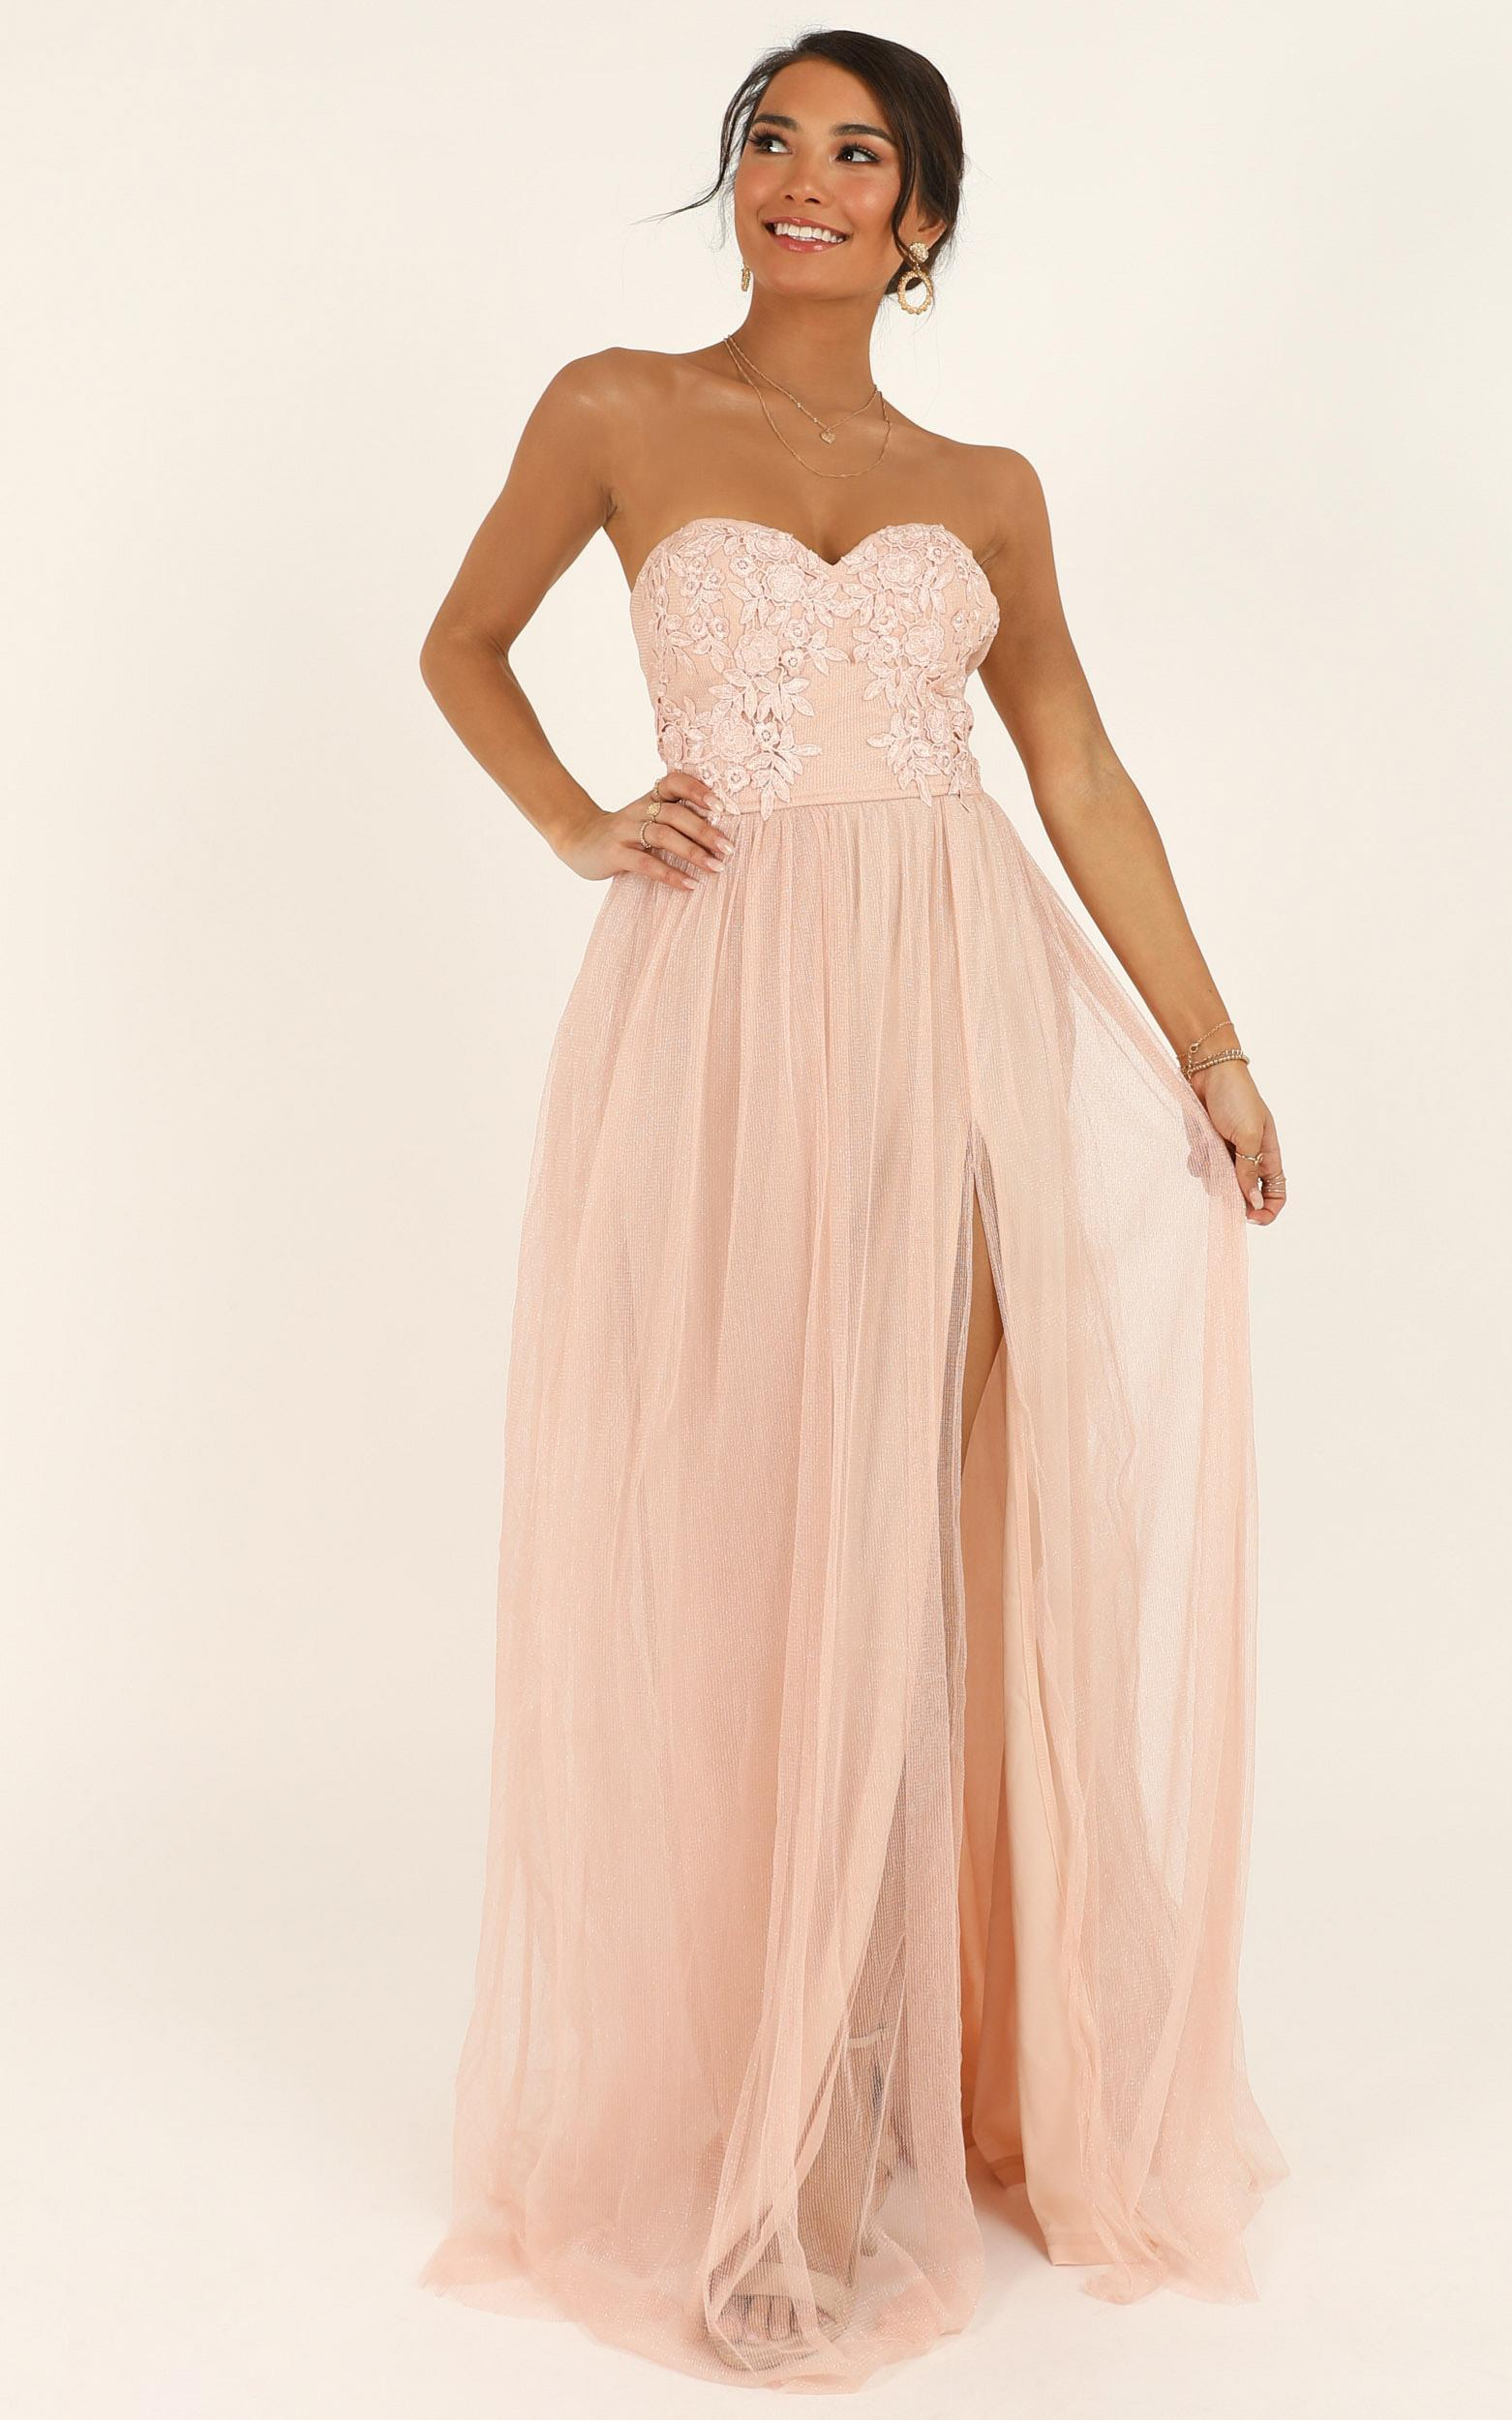 Can't Help It maxi dress in blush - 12 (L), Blush, hi-res image number null